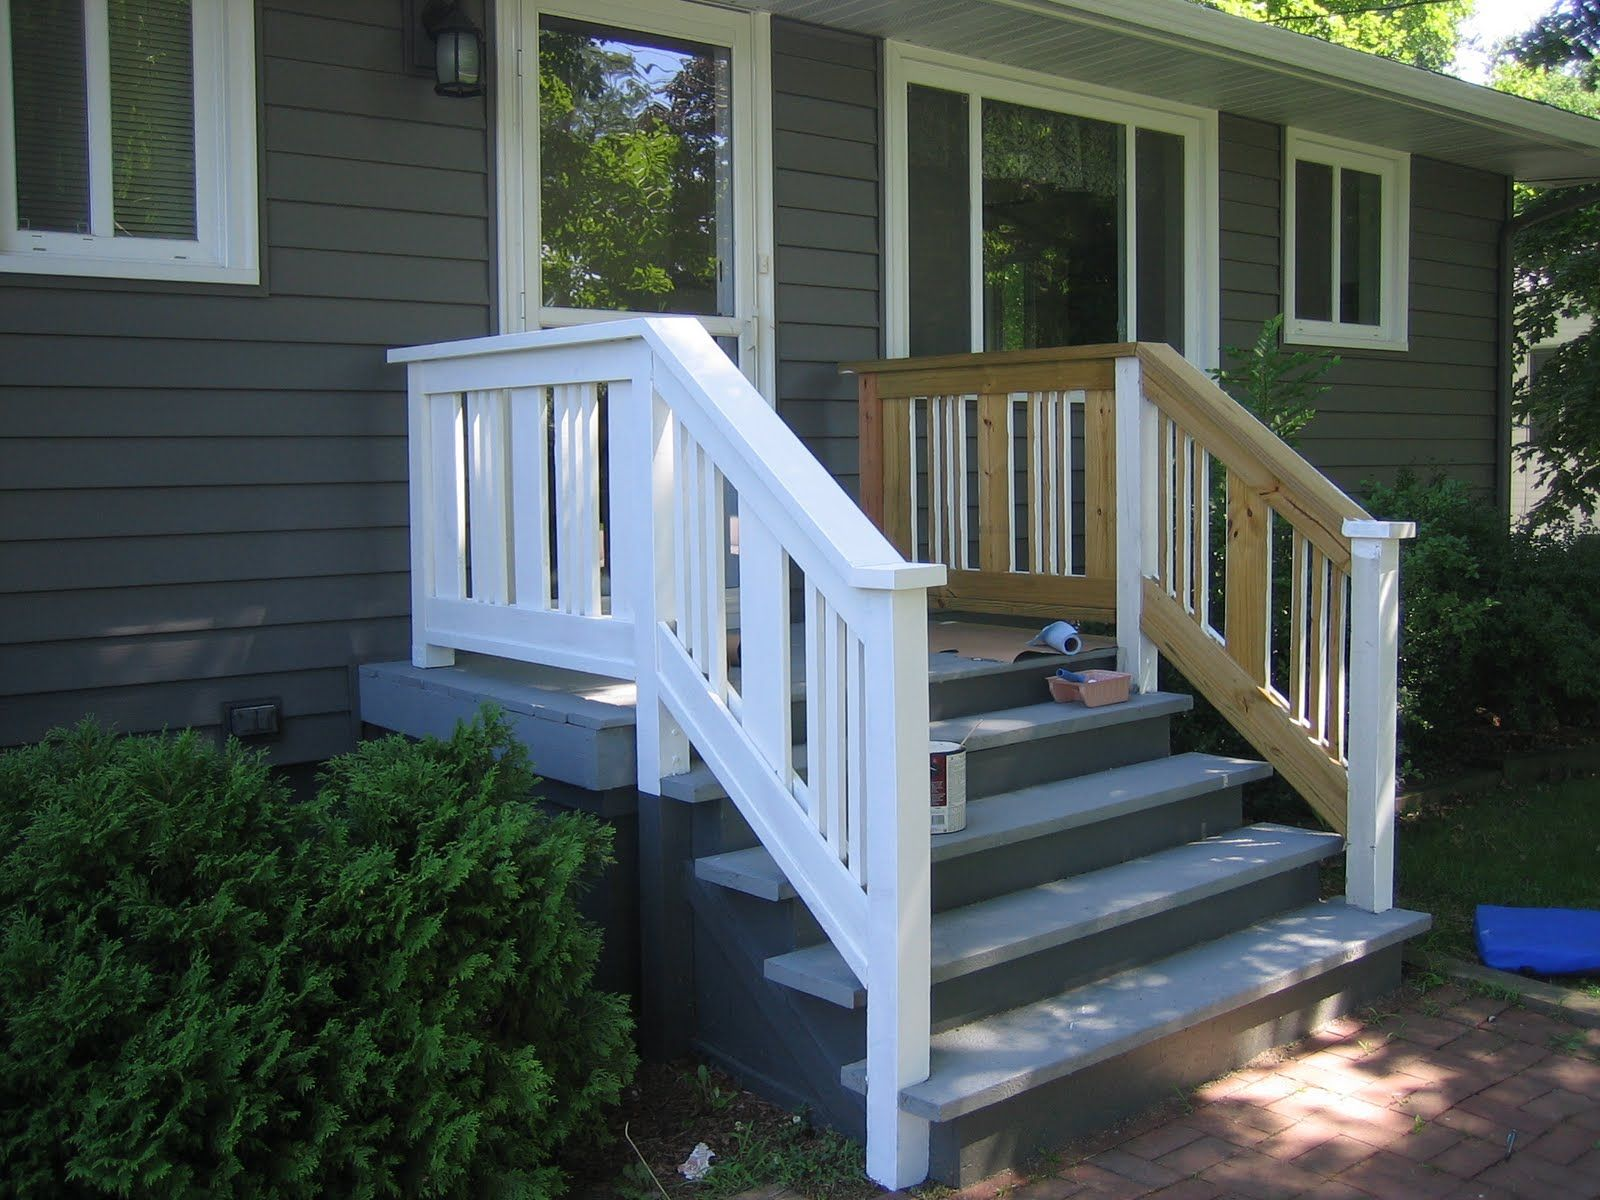 porch railing ideas swings wood designs front railings with fabulous